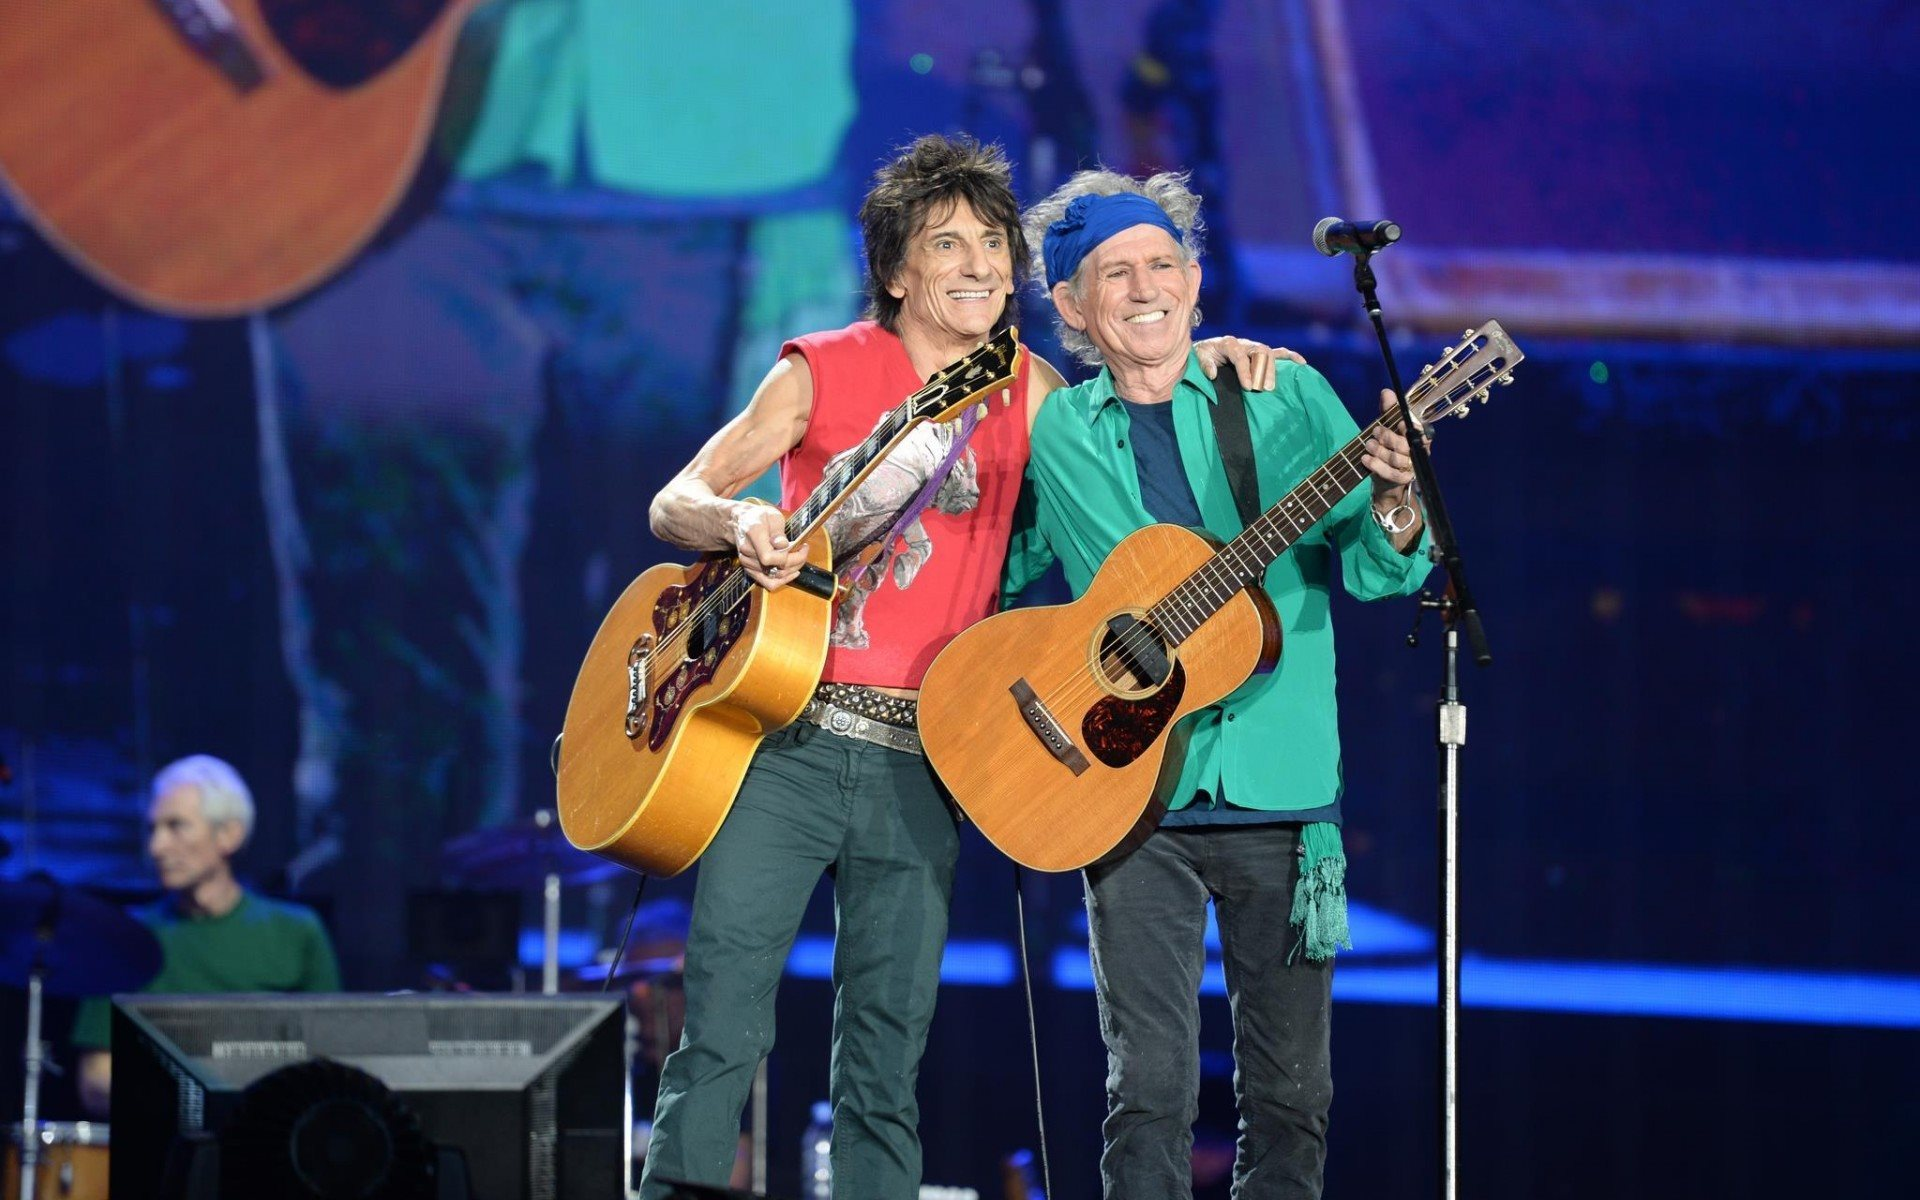 Download wallpapers the rolling stones ron wood keith richards 1920x1200